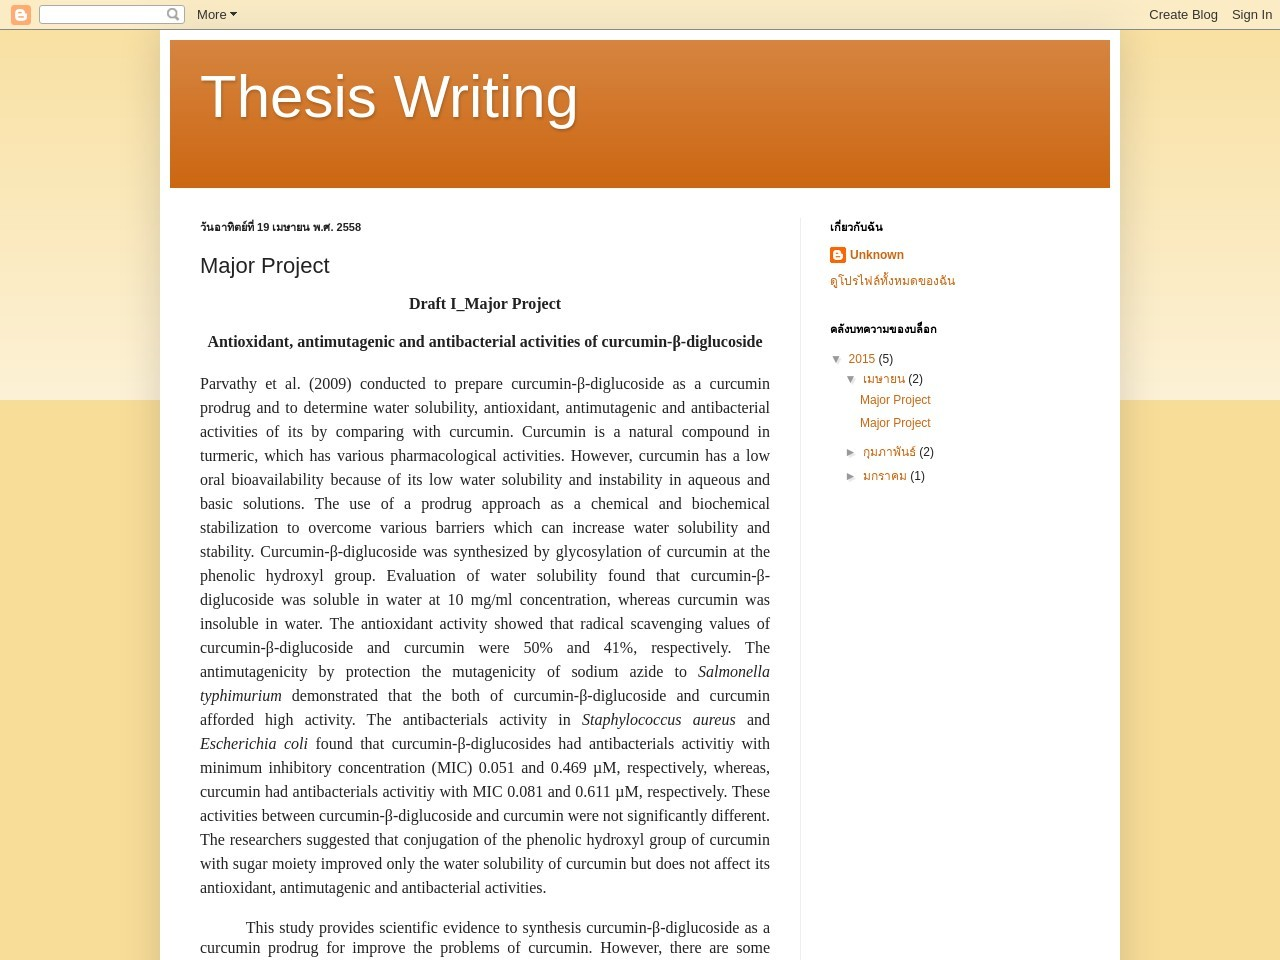 Thesis Writing: Major Project